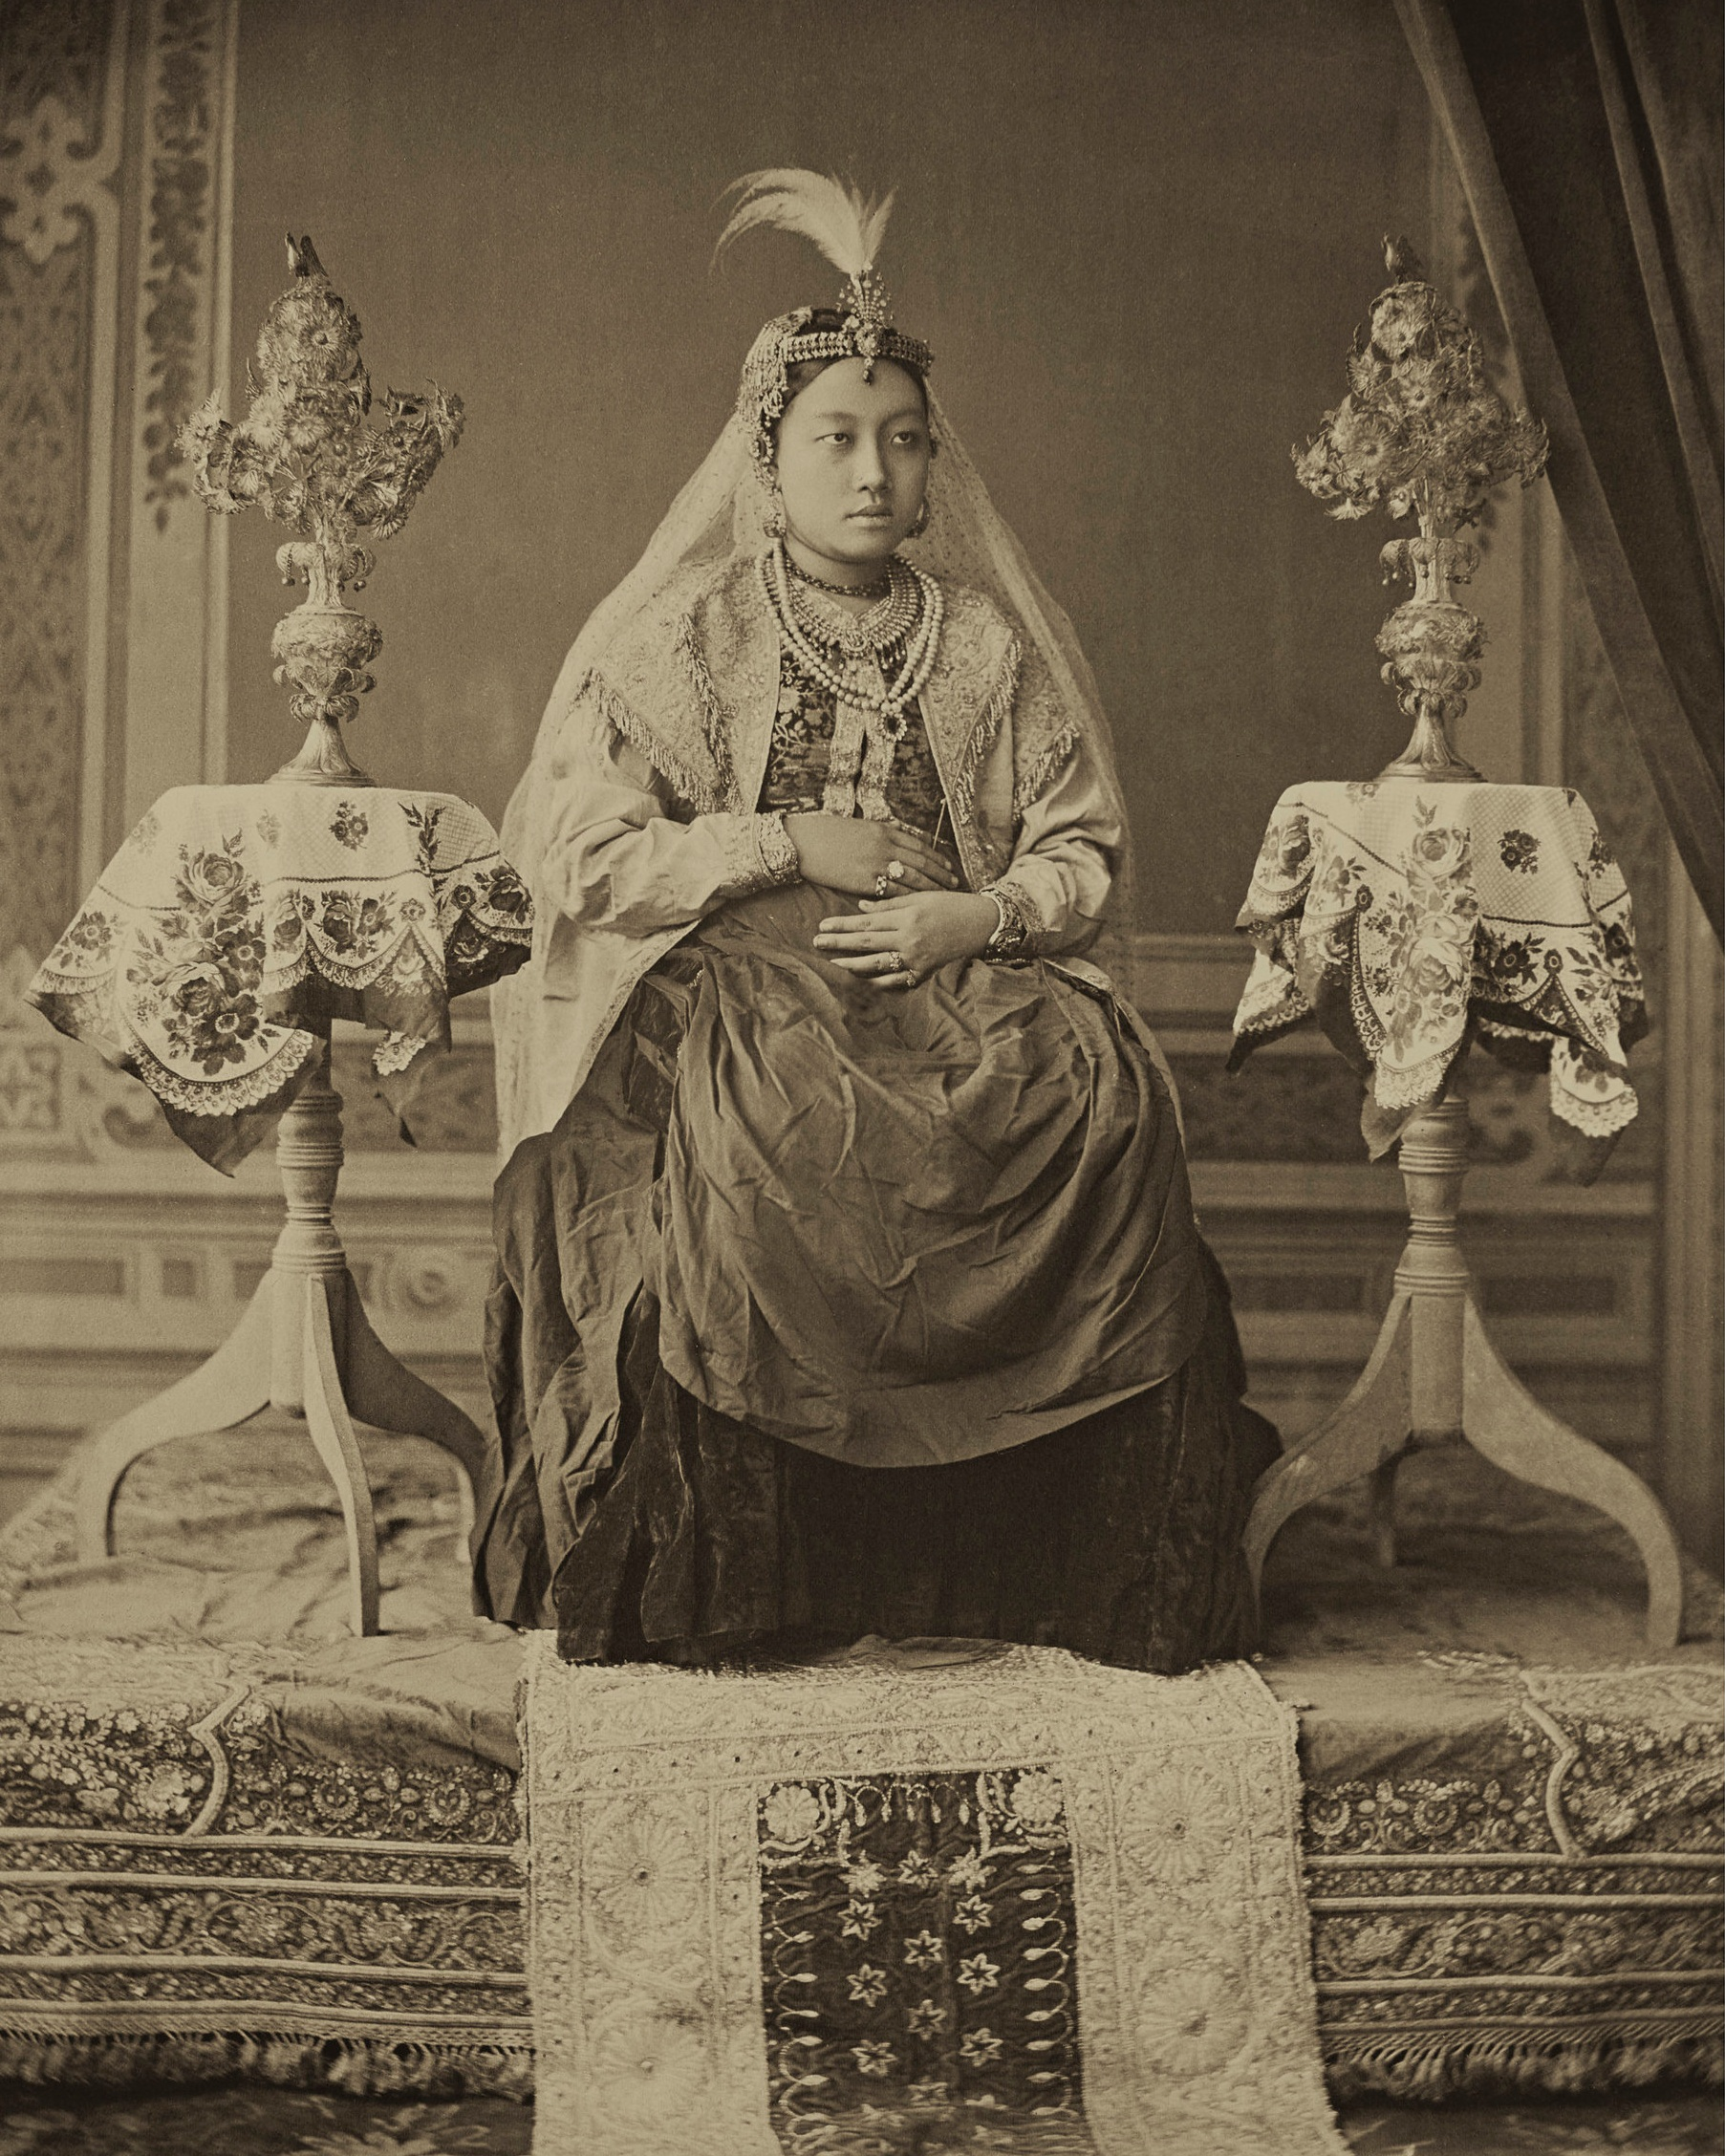 Maharani Monmohini Devi. The Maharani posing like British Queen Victoria in what appears to be an eclectic and creatively staged shot. The Queen wears a plain European dress with one of her own blouses, a silk jacket with long sleeves and a feathered Mughal head ornament that holds a veil down in place.  c.1890.  Photographed by Raja Bir Chandra Manikya. Platinum palladium print.